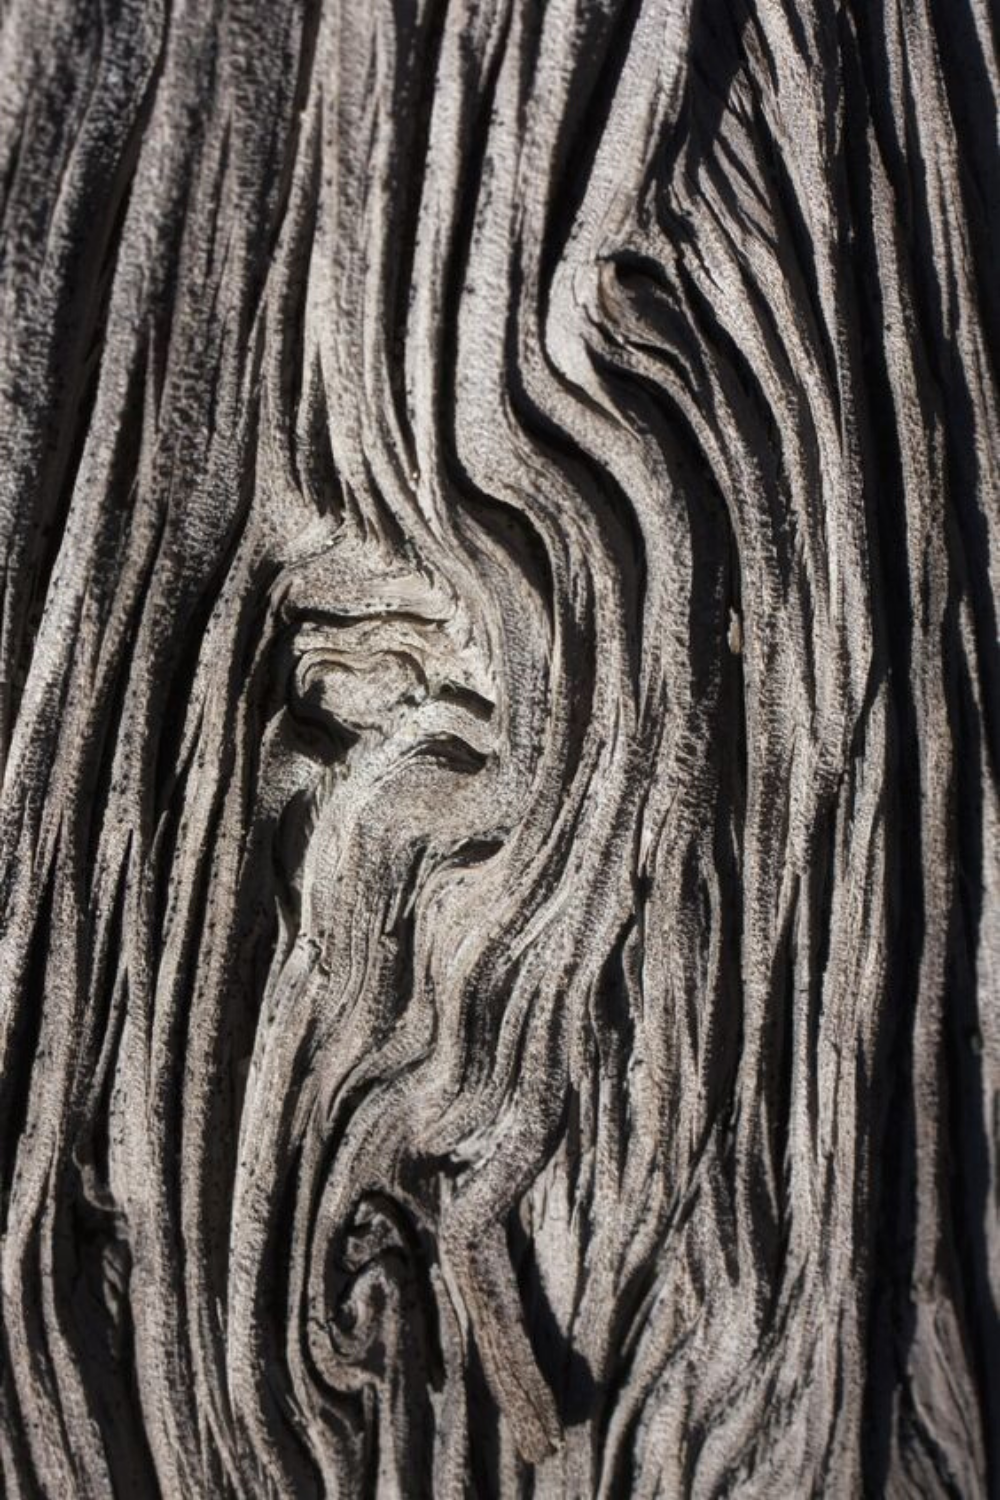 Inspired By Textures In 2020 Tree Textures Tree Bark Texture Textured Artwork